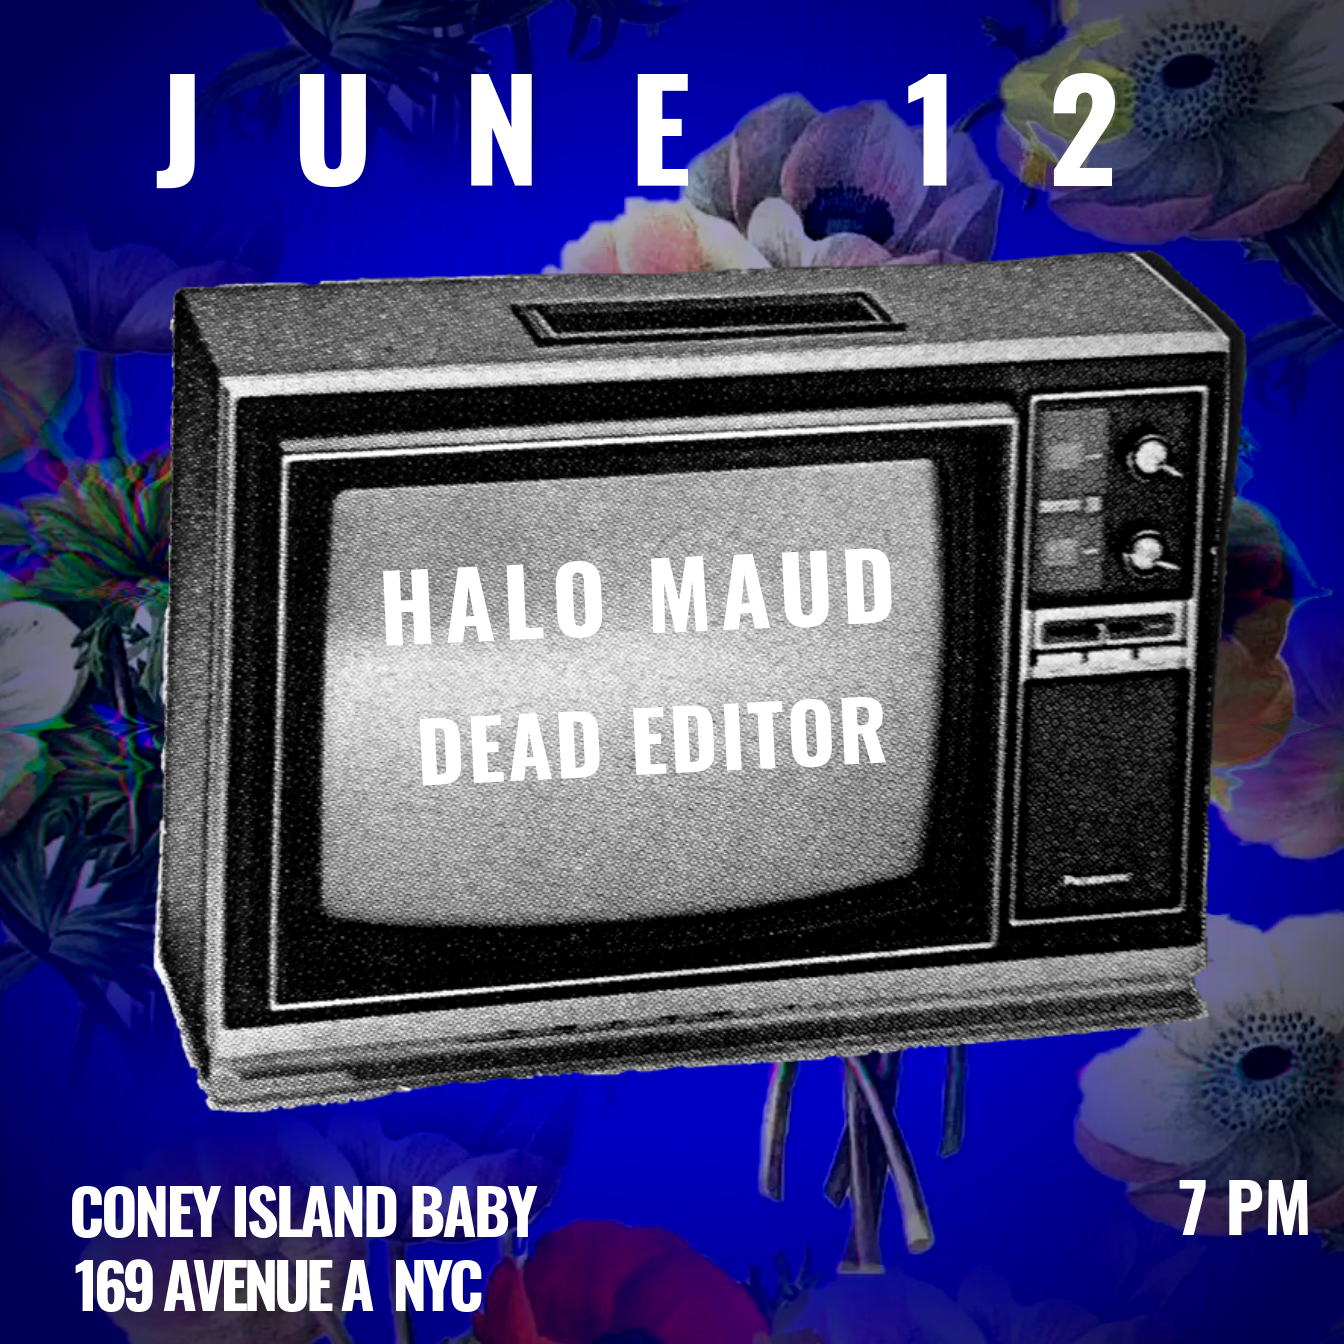 Flyer for Halo Maud and Dead Editor at Coney Island Baby